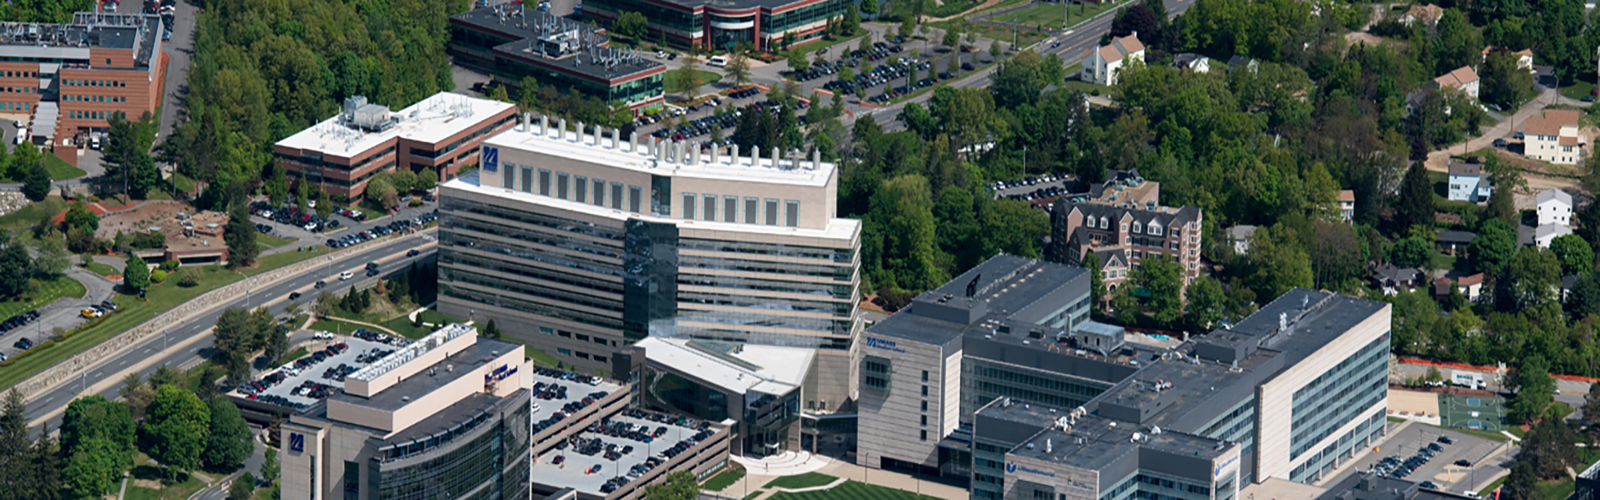 UMass Medical School Campus Aerial View